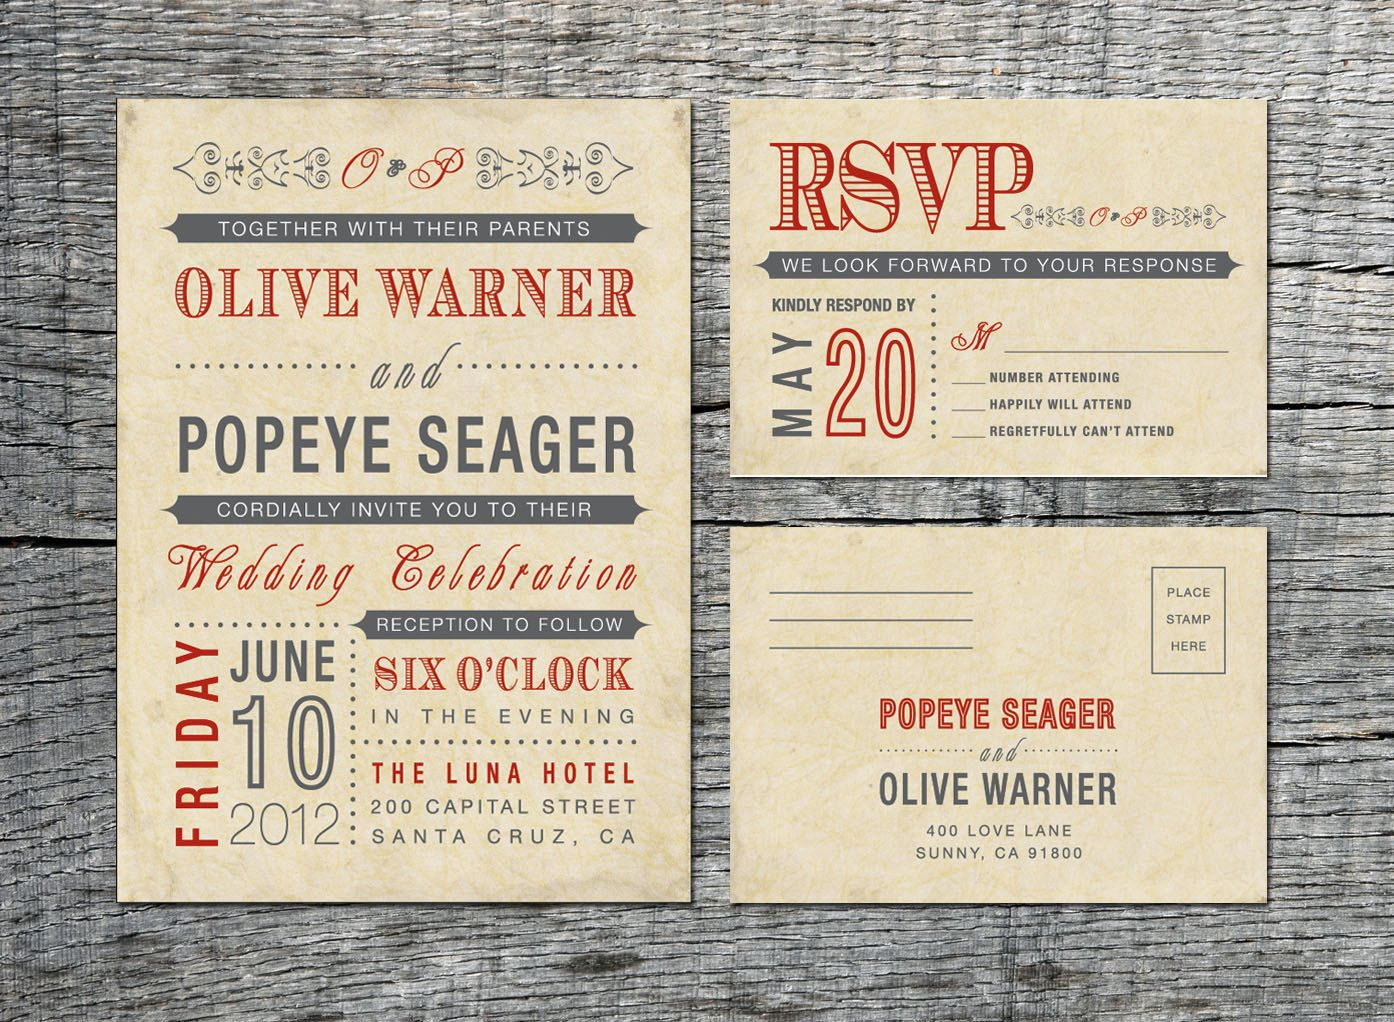 Vintage Wedding Invitation & RSVP Card - Old Fashioned Style ...